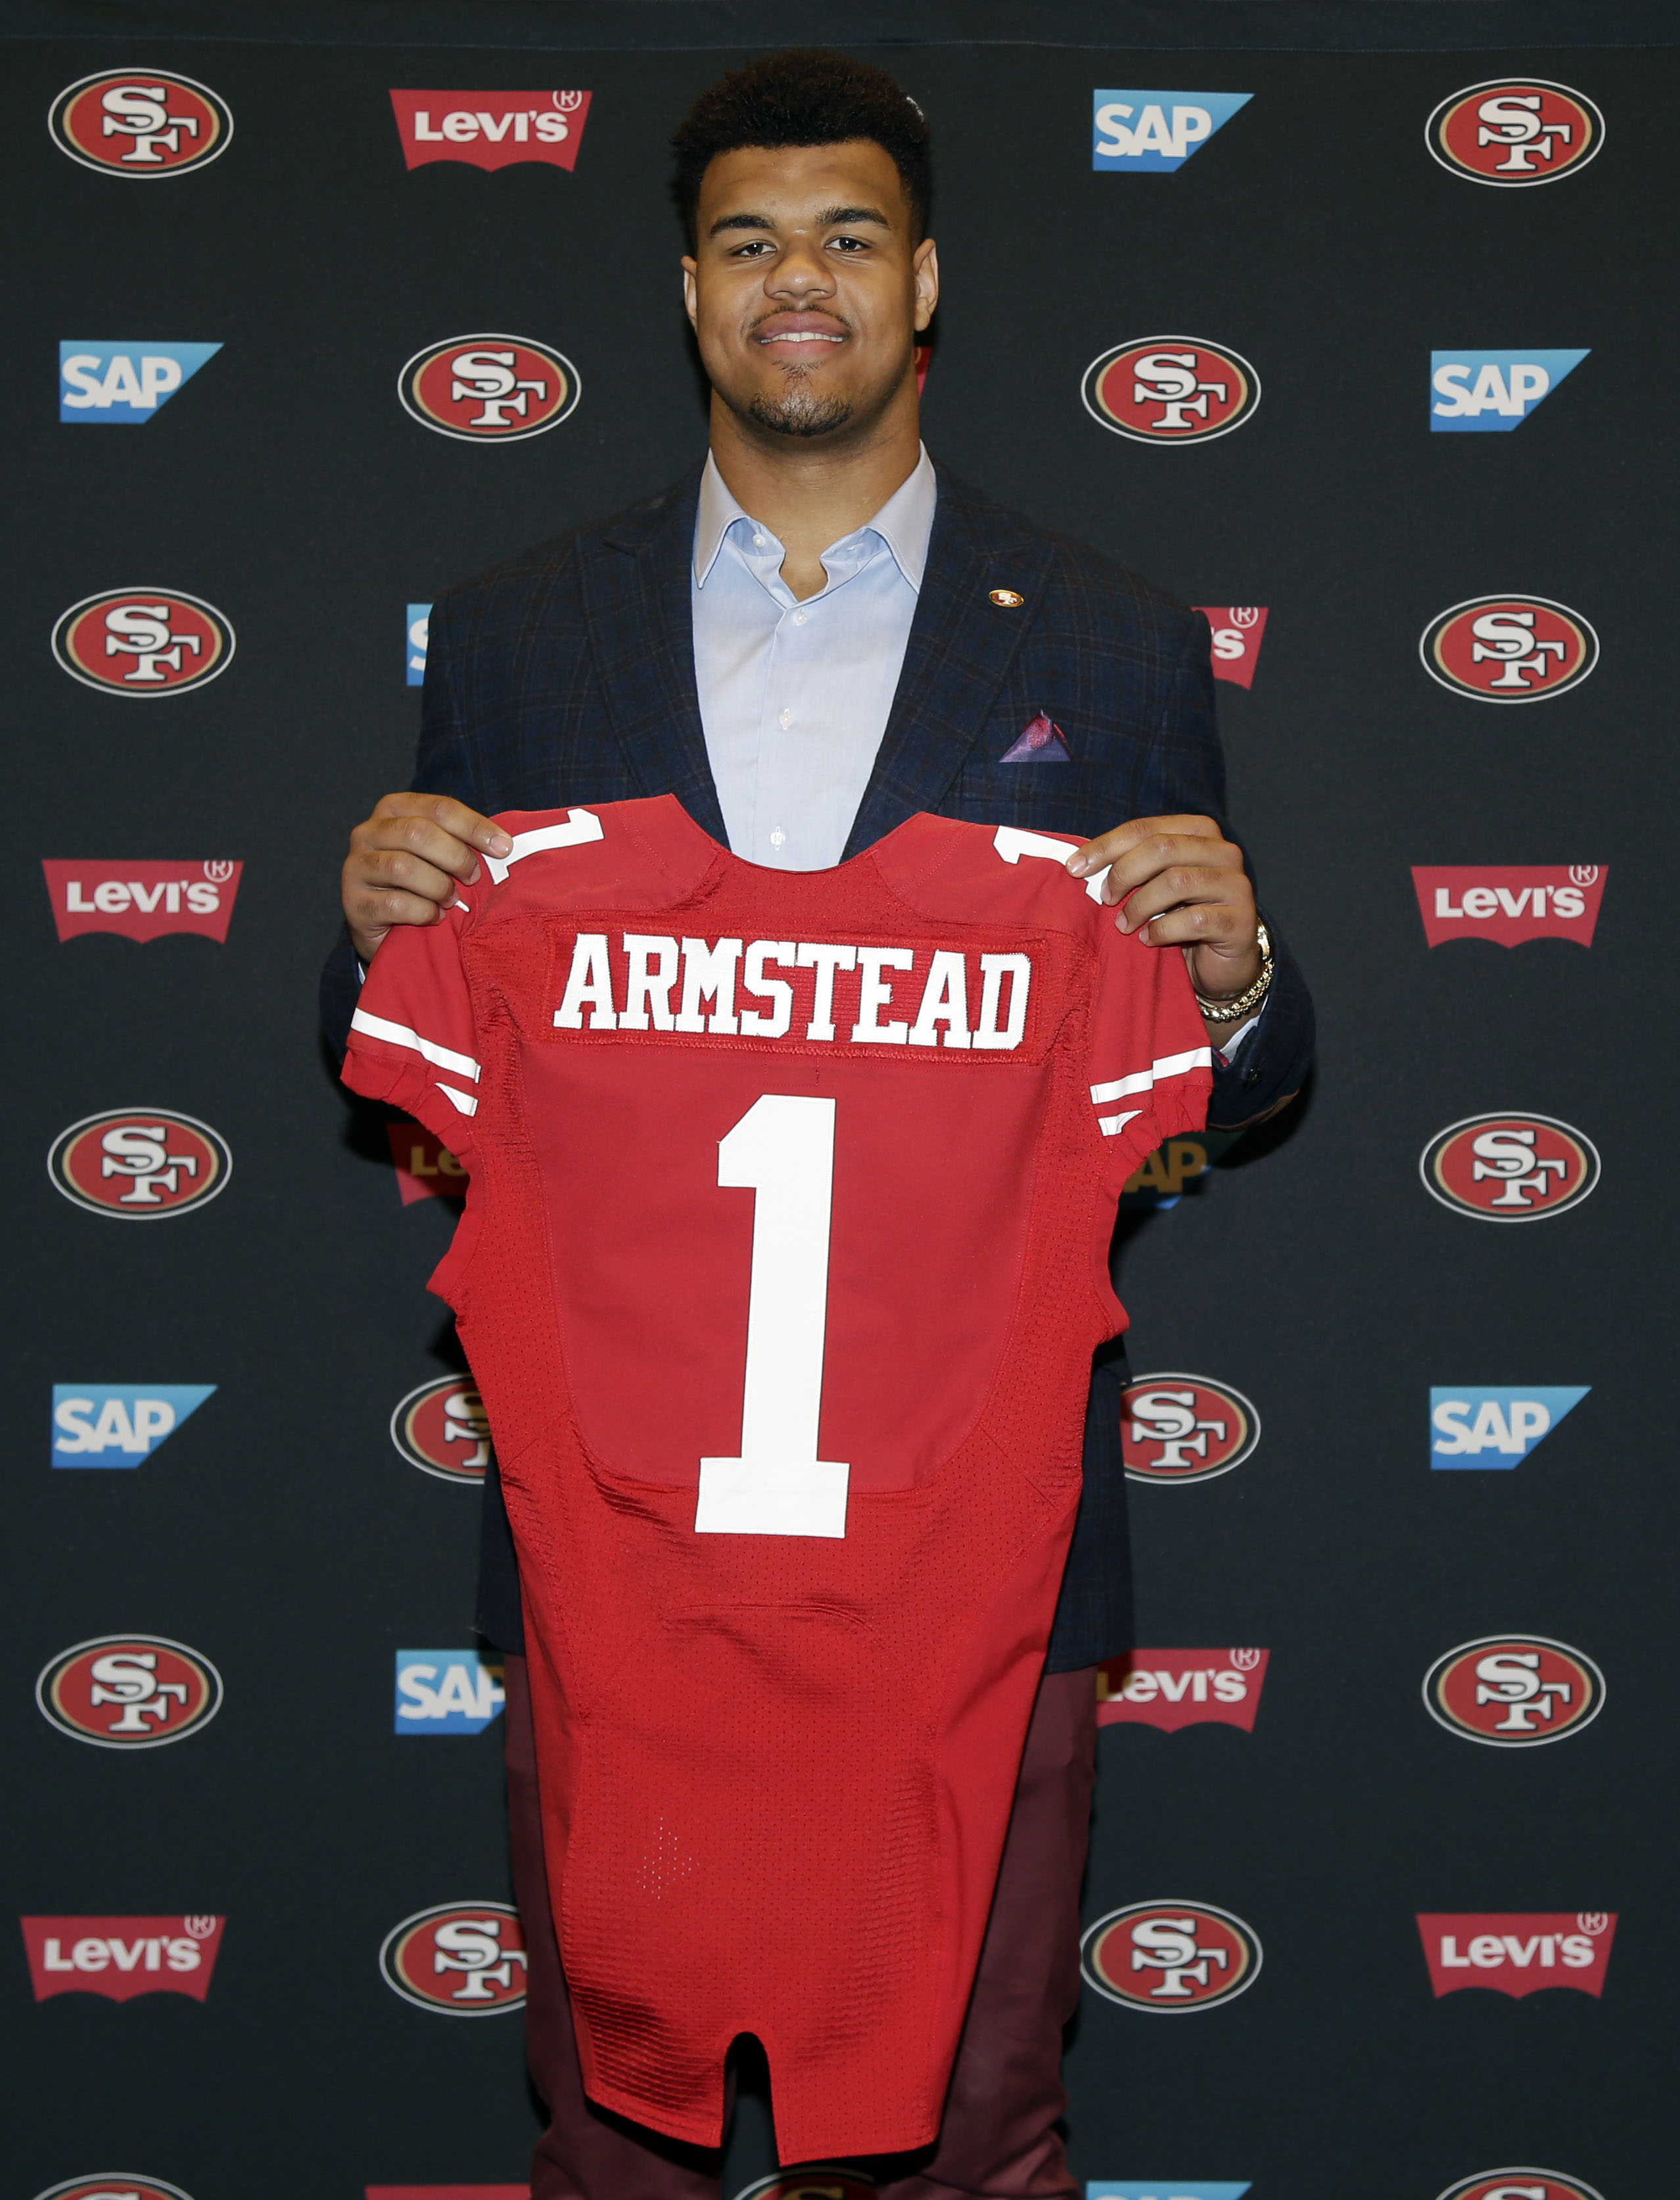 San Francisco 49ers first-round draft pick Arik Armstead holds up a jersey during an NFL football news conference Friday, May 1, 2015, in Santa Clara, Calif. (AP Photo/Marcio Jose Sanchez)